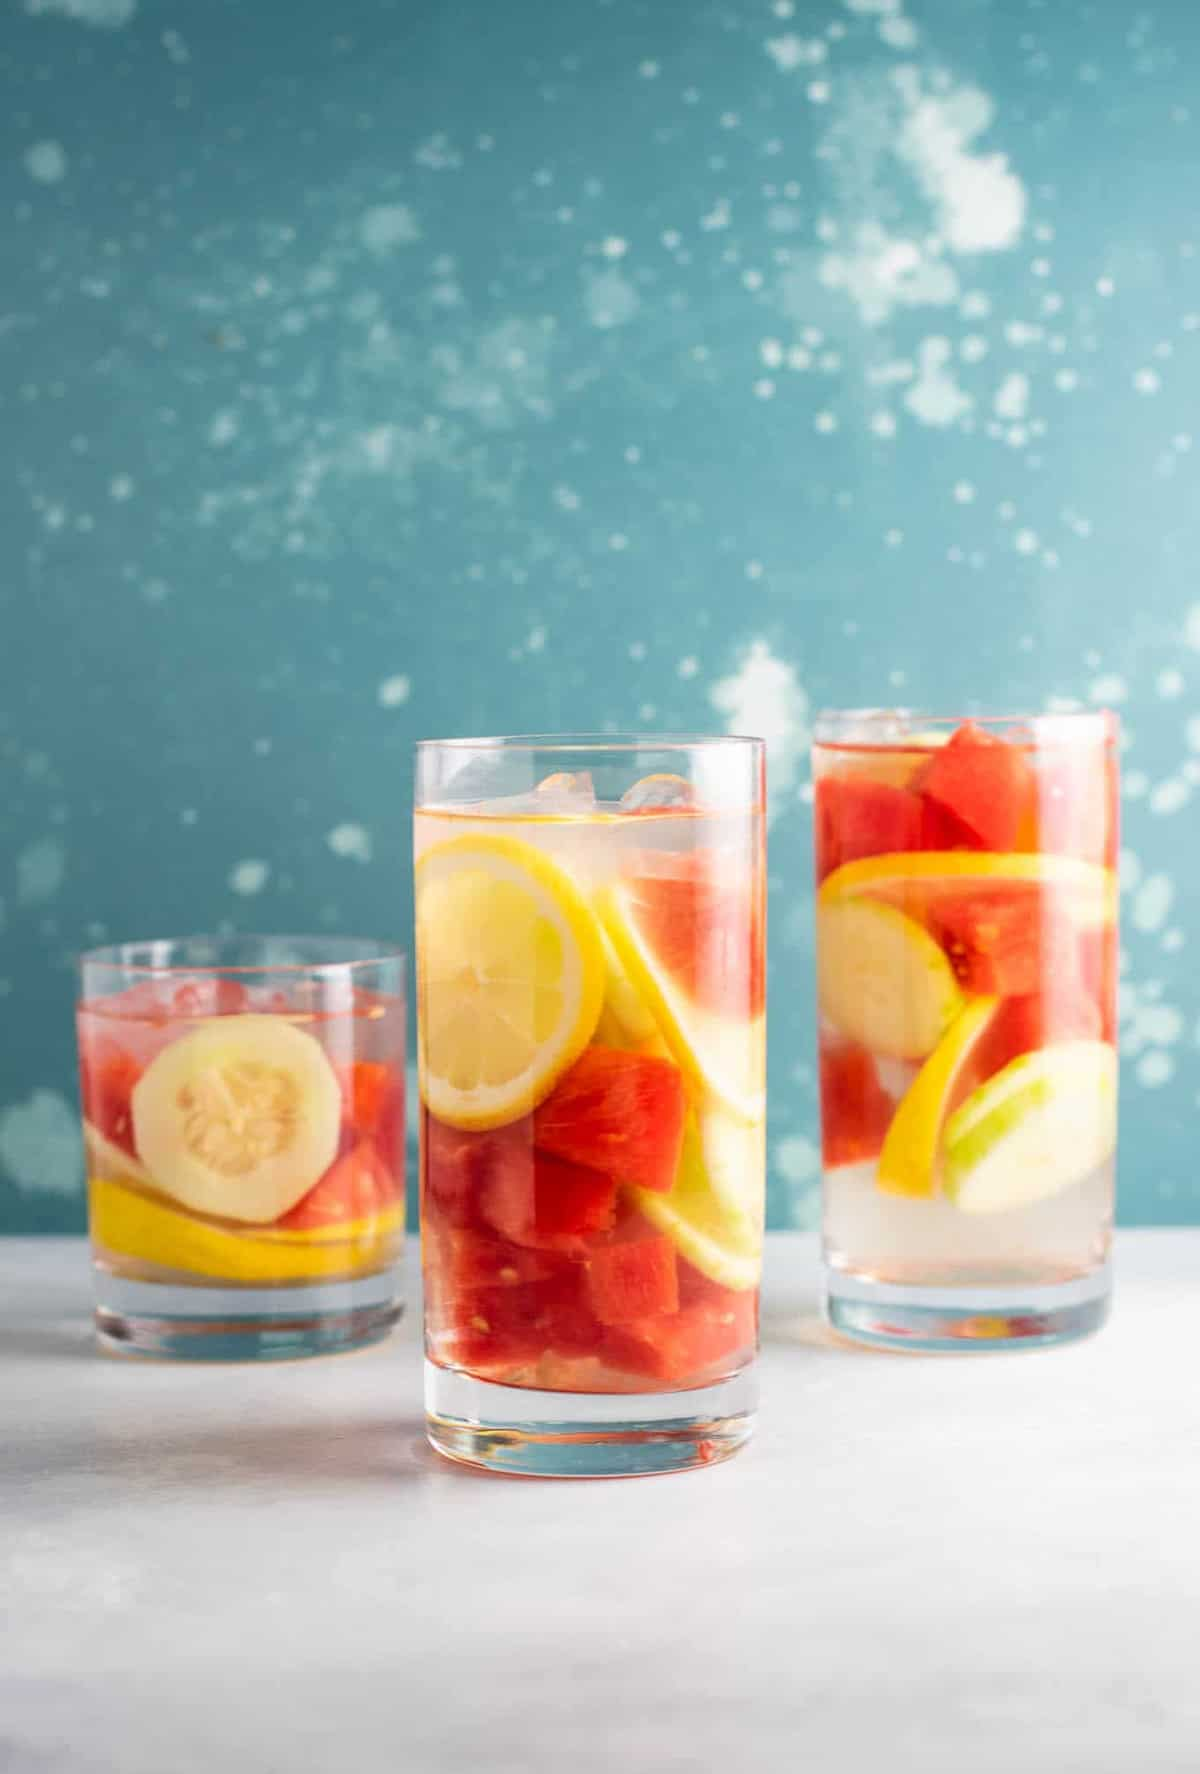 Watermelon detox water recipe with cucumbers and lemon #detoxwater #watermelon #watermelondetox #watermelonwater #vegan #drinks #healthy